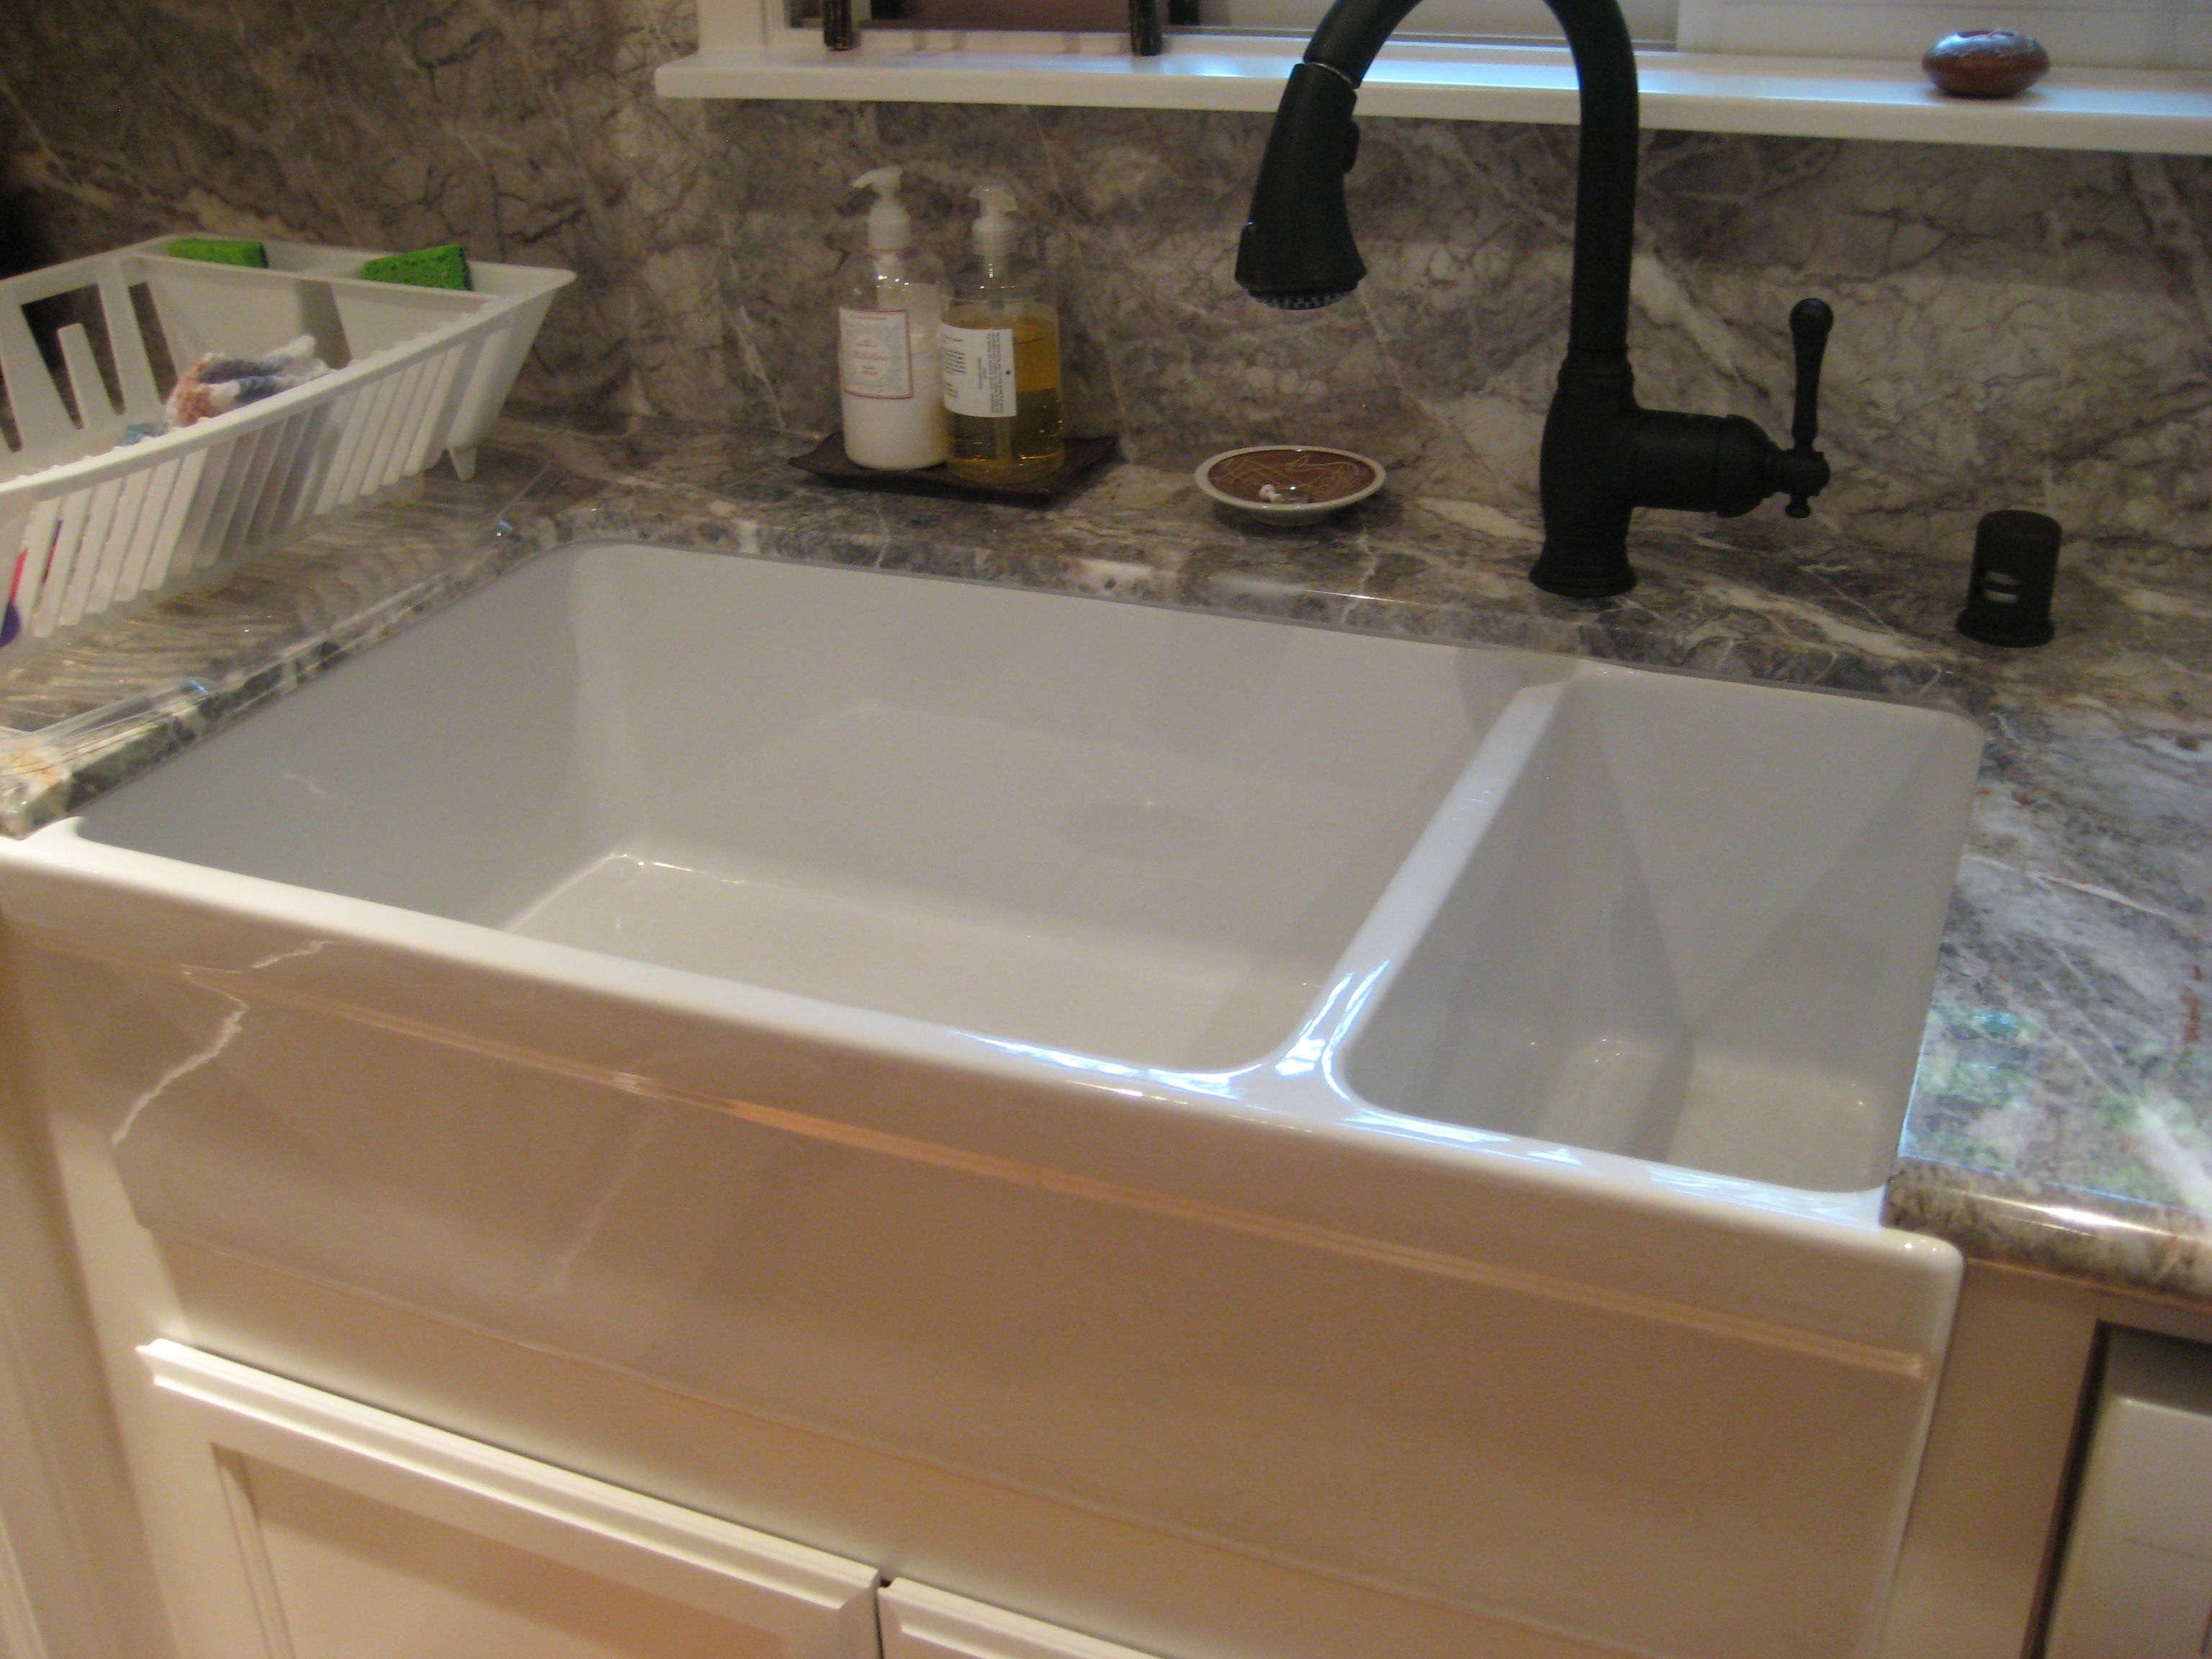 White Porcelain Double Kitchen Sink Part - 24: 17 Best Images About Kitchen Farmhouse Sink On Pinterest Farm Sink Farm  House Sink And Traditional Kitchen Sinks